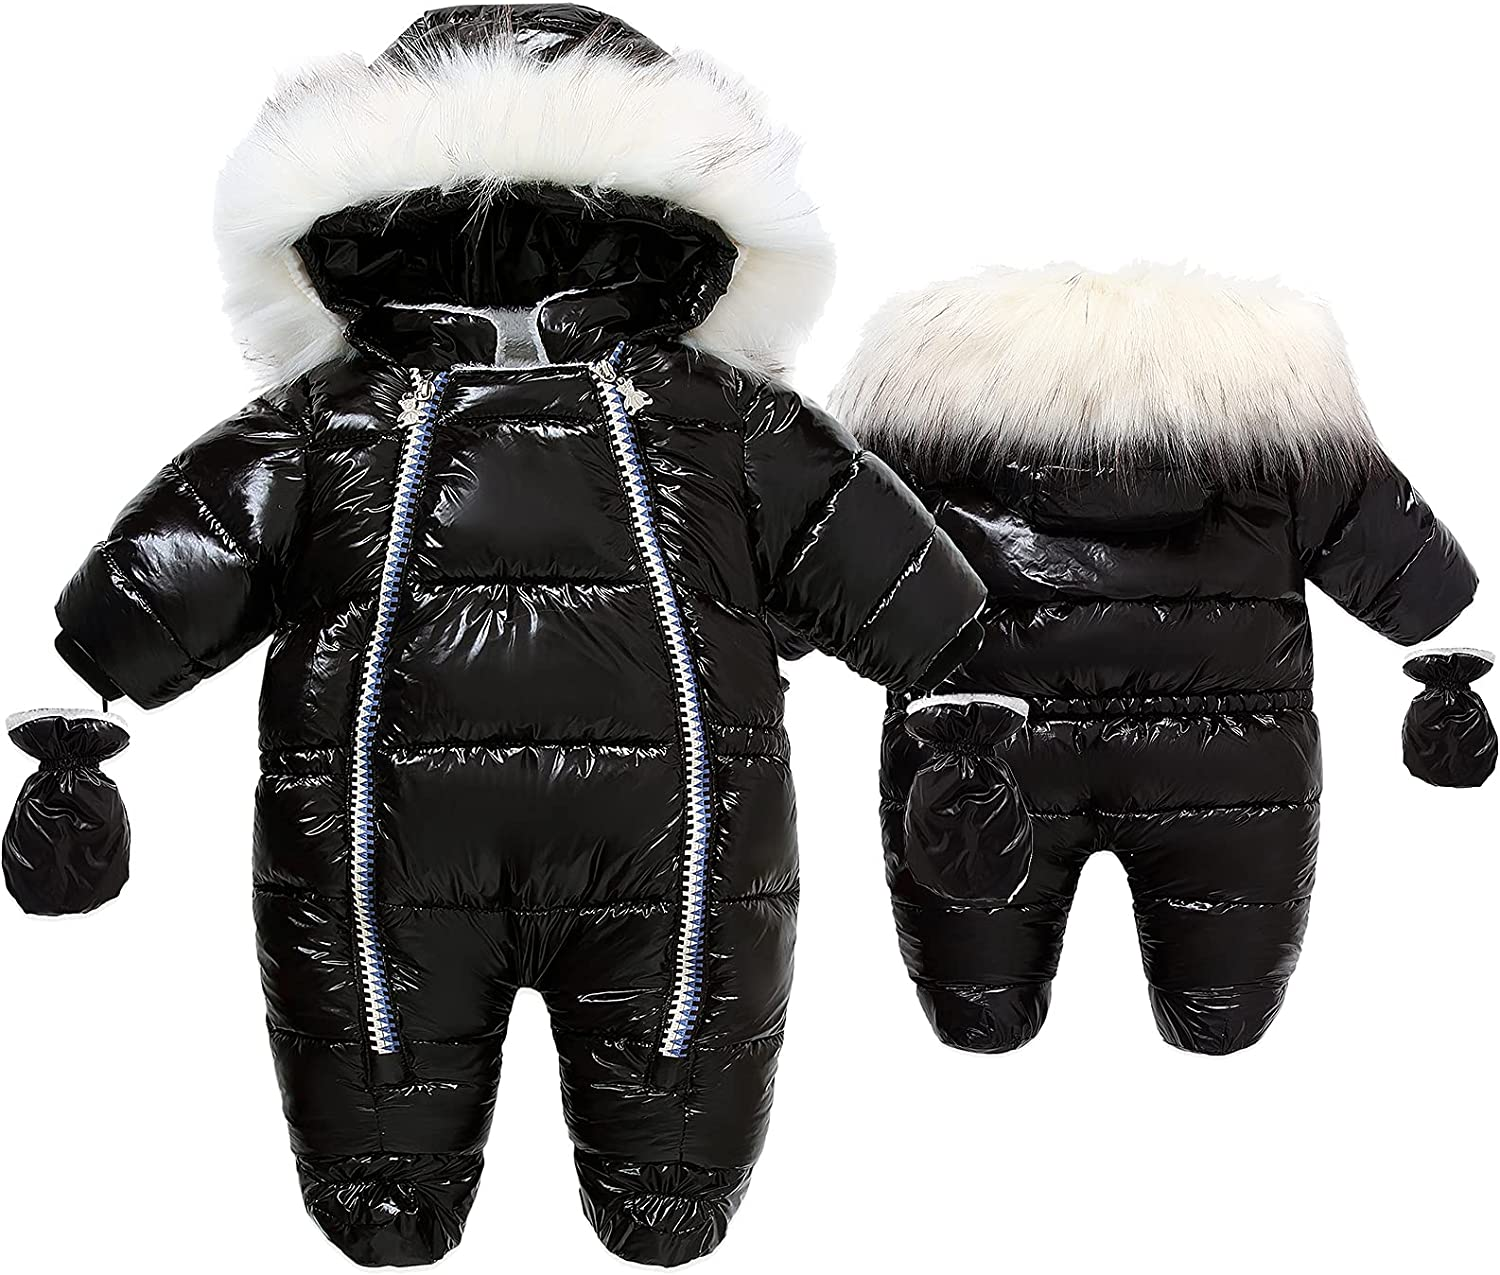 Newest Baby Winter Snowsuit Warm Hooded Romper Down Coat with Mittens and Shoes